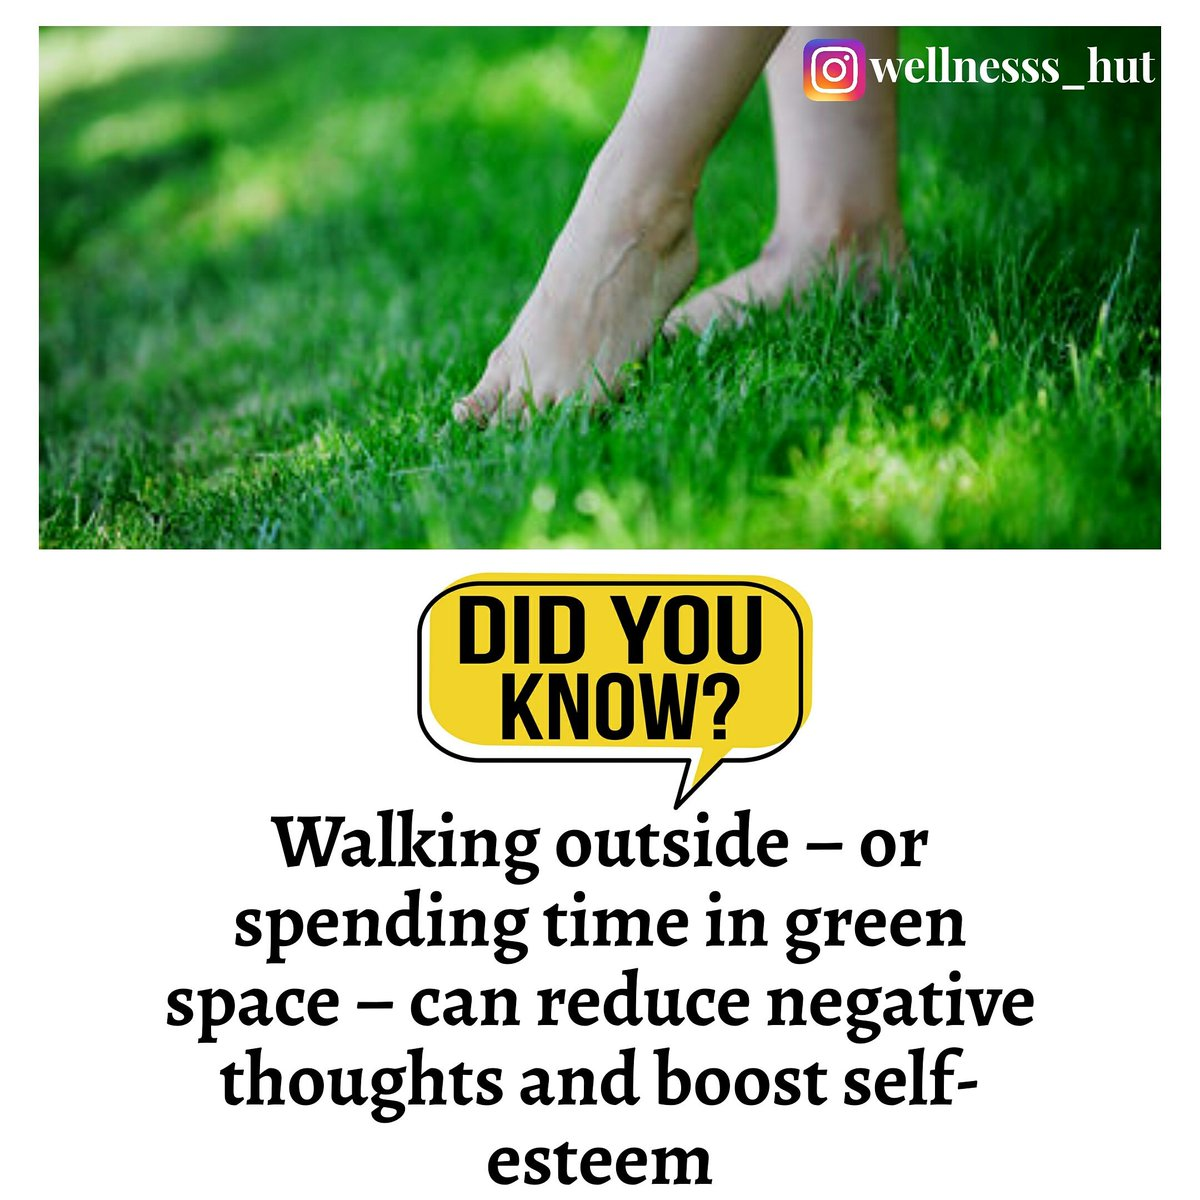 Did you know????  #wellnesss_hut #didyouknow #facts #didyouknowfacts #knowledge #factsdaily #amazingfacts #dailyfacts #factz #interestingfacts #funfacts #doyouknow #truefacts #instafacts #knowledgeispower #generalknowledge  #allfacts #factsoflife #india #realfacts  #worldfacts pic.twitter.com/ssC1pW9U0z